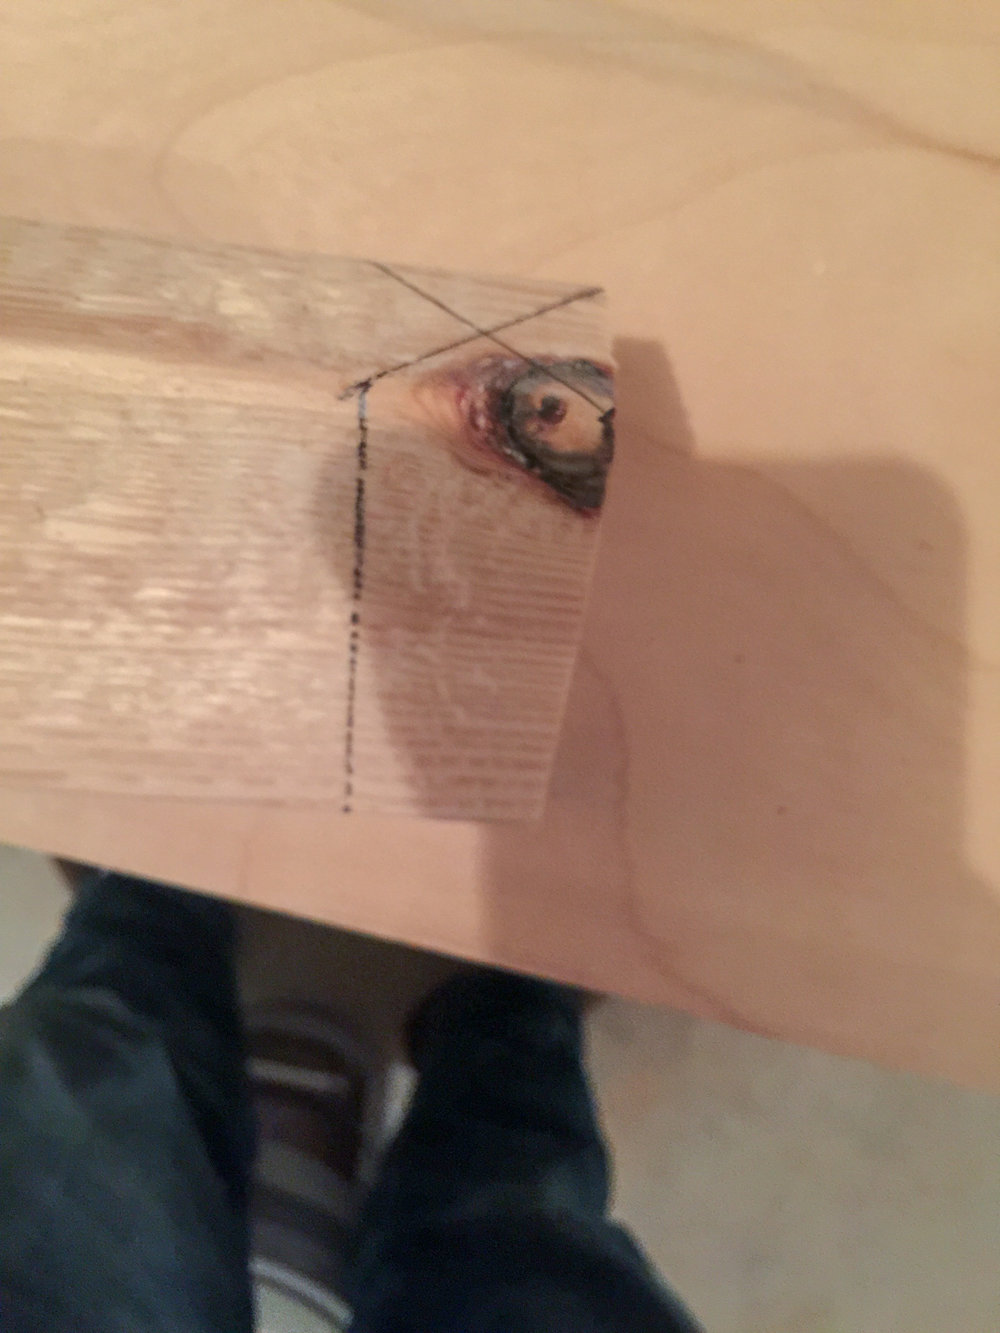 First Workbench - Miter to cut out knot